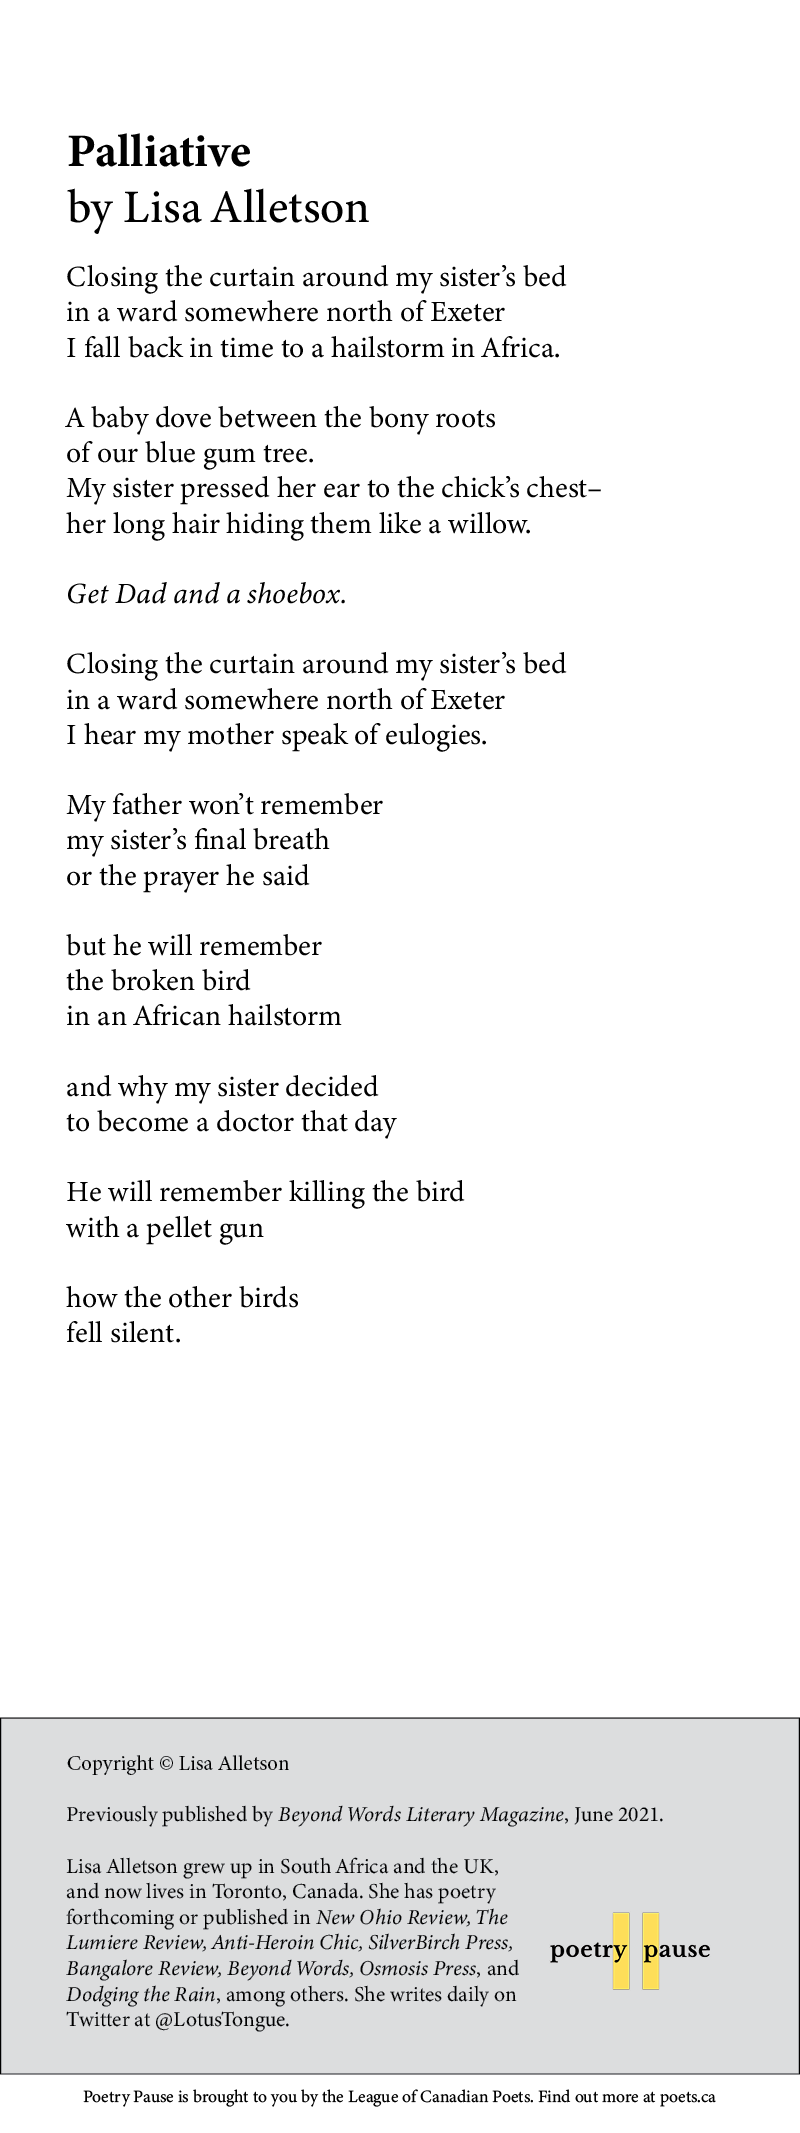 Poet name: Lisa Alletson Poem Title: Palliative Poem begins: Closing the curtain around my sister's bed in a ward somewhere north of Exeter I fall back in time to a hailstorm in Africa.  A baby dove between the bony roots of our blue gum tree. My sister pressed her ear to the chick's chest– her long hair hiding them like a willow.  Get Dad and a shoebox.  Closing the curtain around my sister's bed in a ward somewhere north of Exeter I hear my mother speak of eulogies.  My father won't remember  my sister's final breath or the prayer he said  but he will remember the broken bird in an African hailstorm  and why my sister decided to become a doctor that day  He will remember killing the bird with a pellet gun  how the other birds fell silent. End of poem.  Credits and bio: Copyright © Lisa Alletson Previously published by Beyond Words Literary Magazine, June 2021. Lisa Alletson grew up in South Africa and the UK, and now lives in Toronto, Canada. She has poetry forthcoming or published in New Ohio Review, The Lumiere Review, Anti-Heroin Chic, SilverBirch Press, Bangalore Review, Beyond Words, Osmosis Press, and Dodging the Rain, among others. She writes daily on Twitter at @LotusTongue.